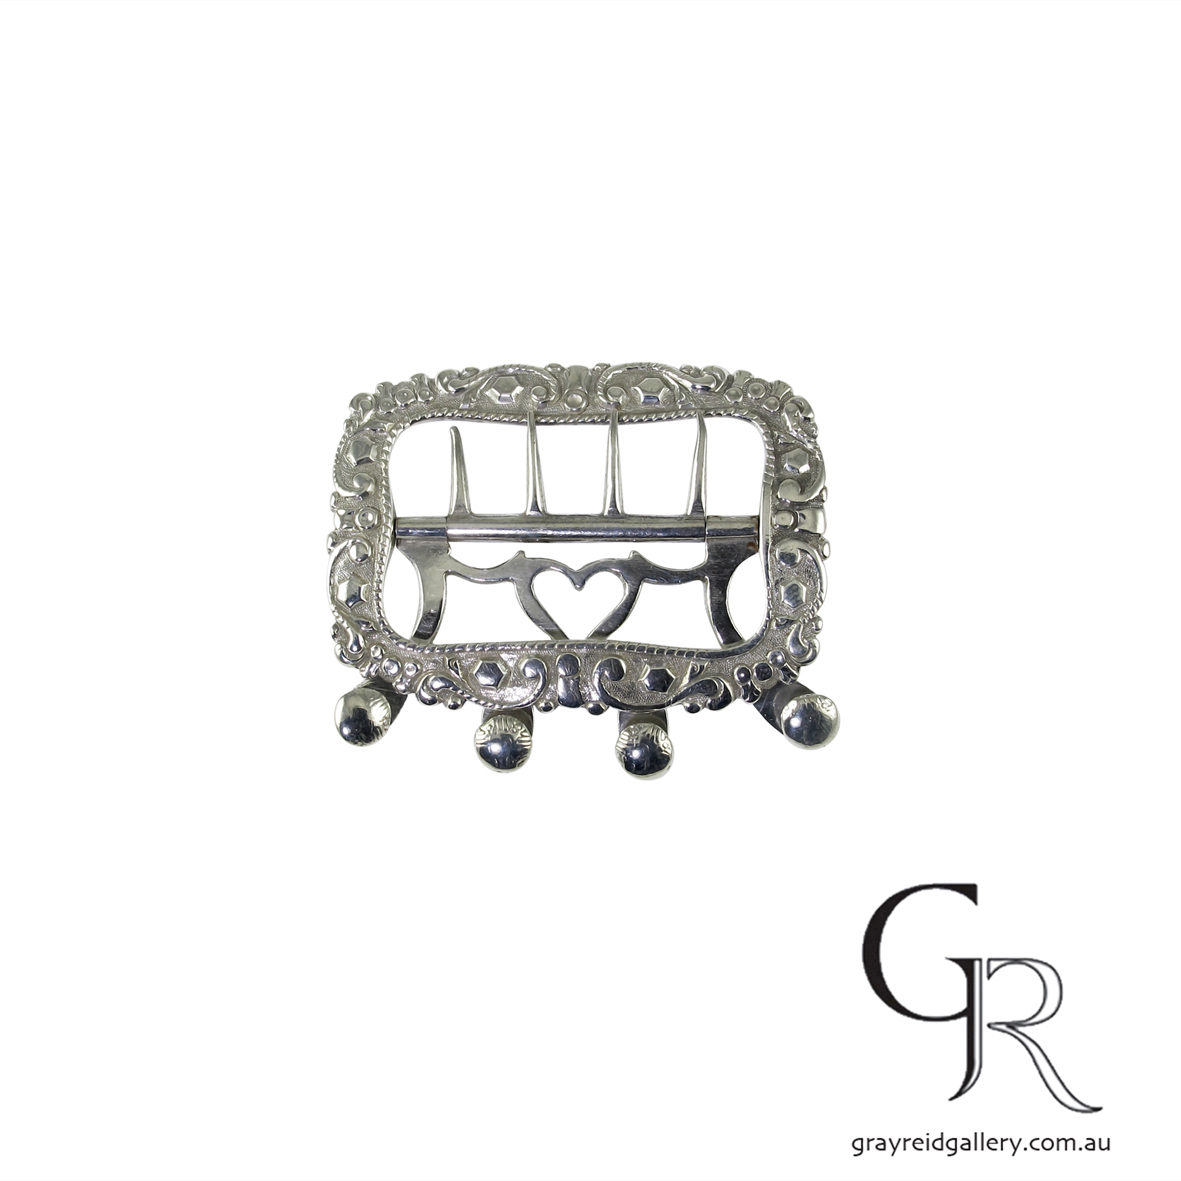 antiques and collectables melbourne sterling silver belt buckle Gray Reid Gallery 4.jpg